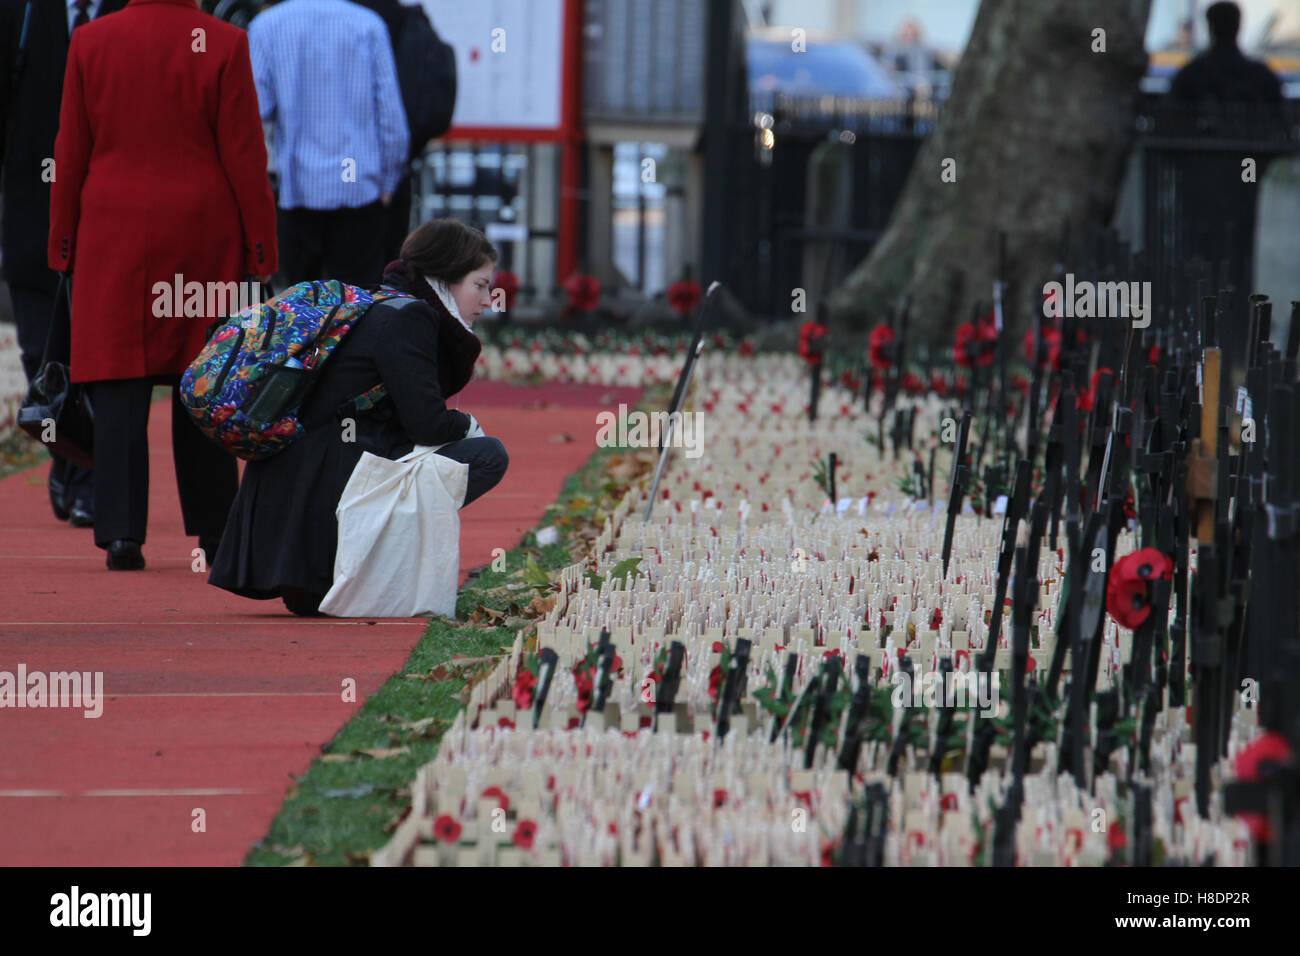 London, UK. 11th November, 2016. A woman seen looking at some of the thousands of crosses planted at the Fields - Stock Image